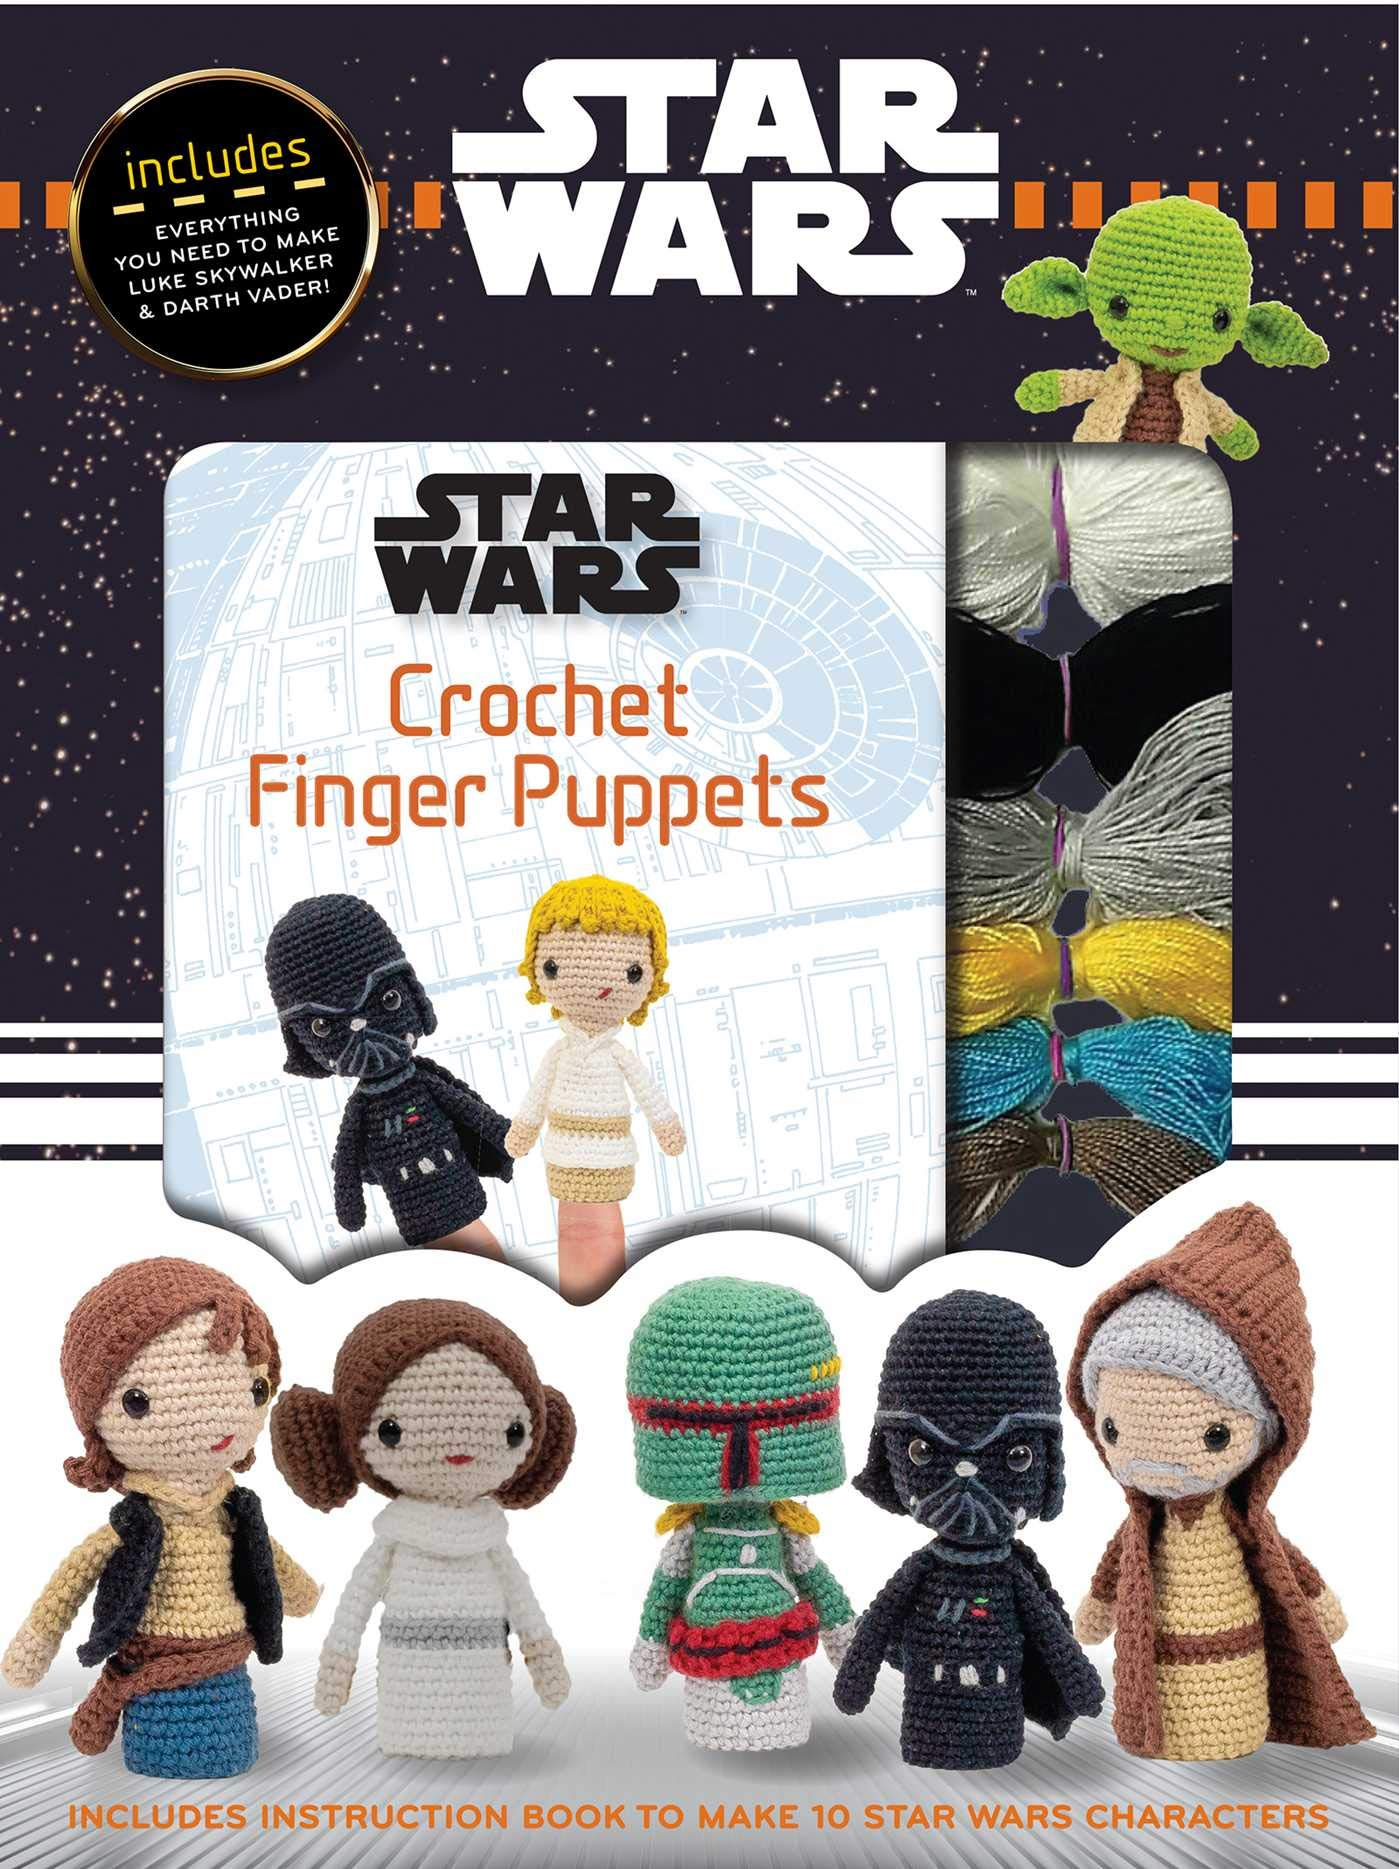 Star Wars: Crochet Finger Puppets